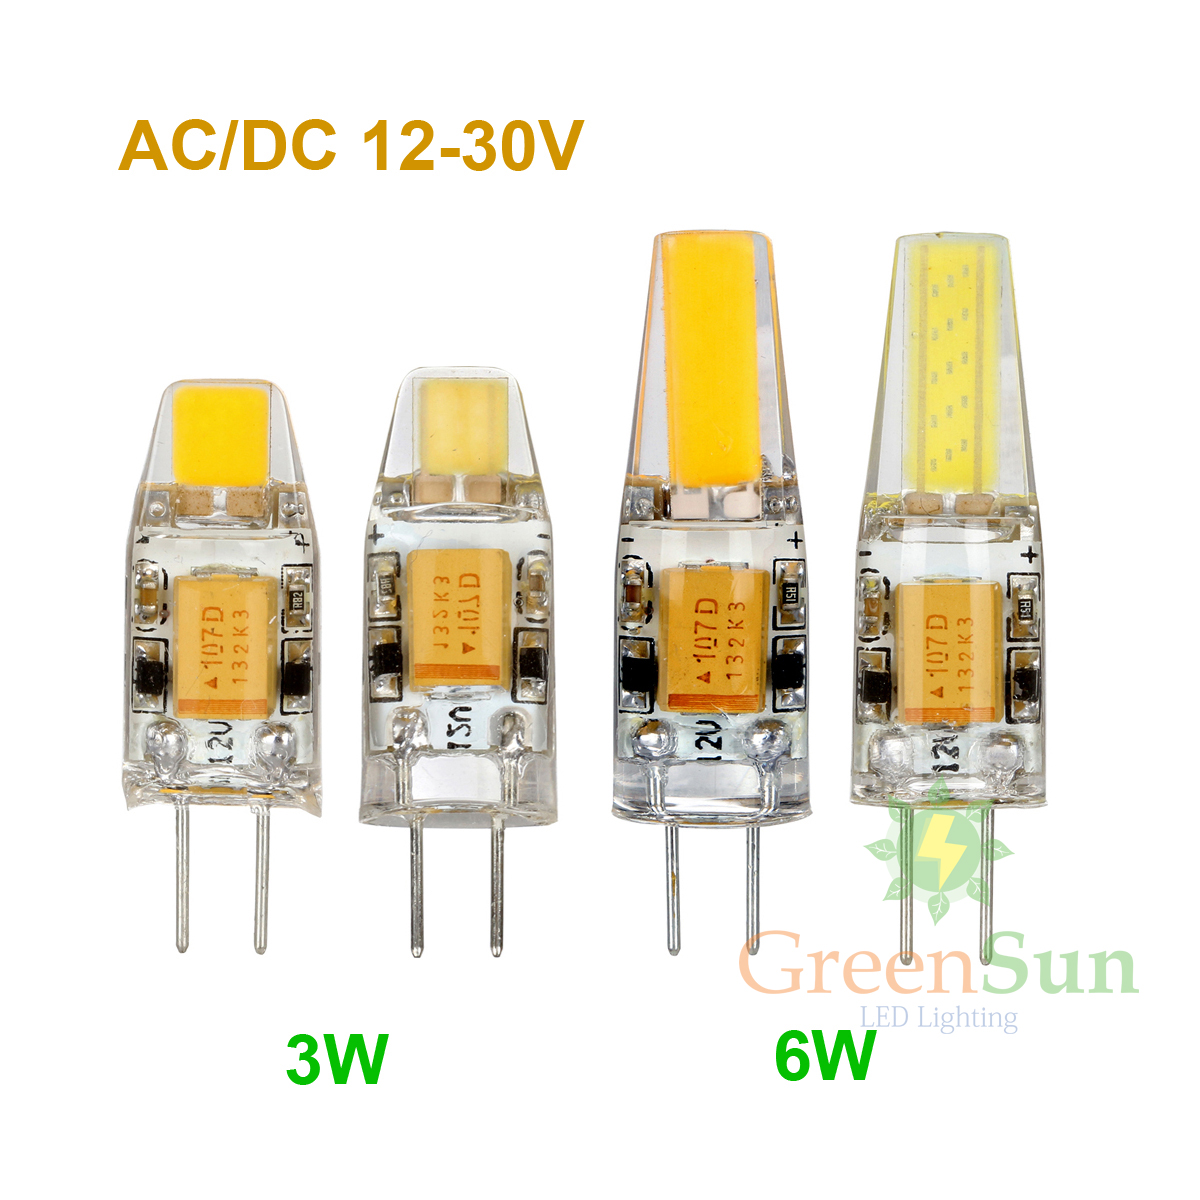 Mini G4 LED Lamp 3W 6W AC/DC 12V Dimmable G4 COB Capsule LED Bulb 360 Beam Angle Replace Halogen Lamp Chandelier Lights